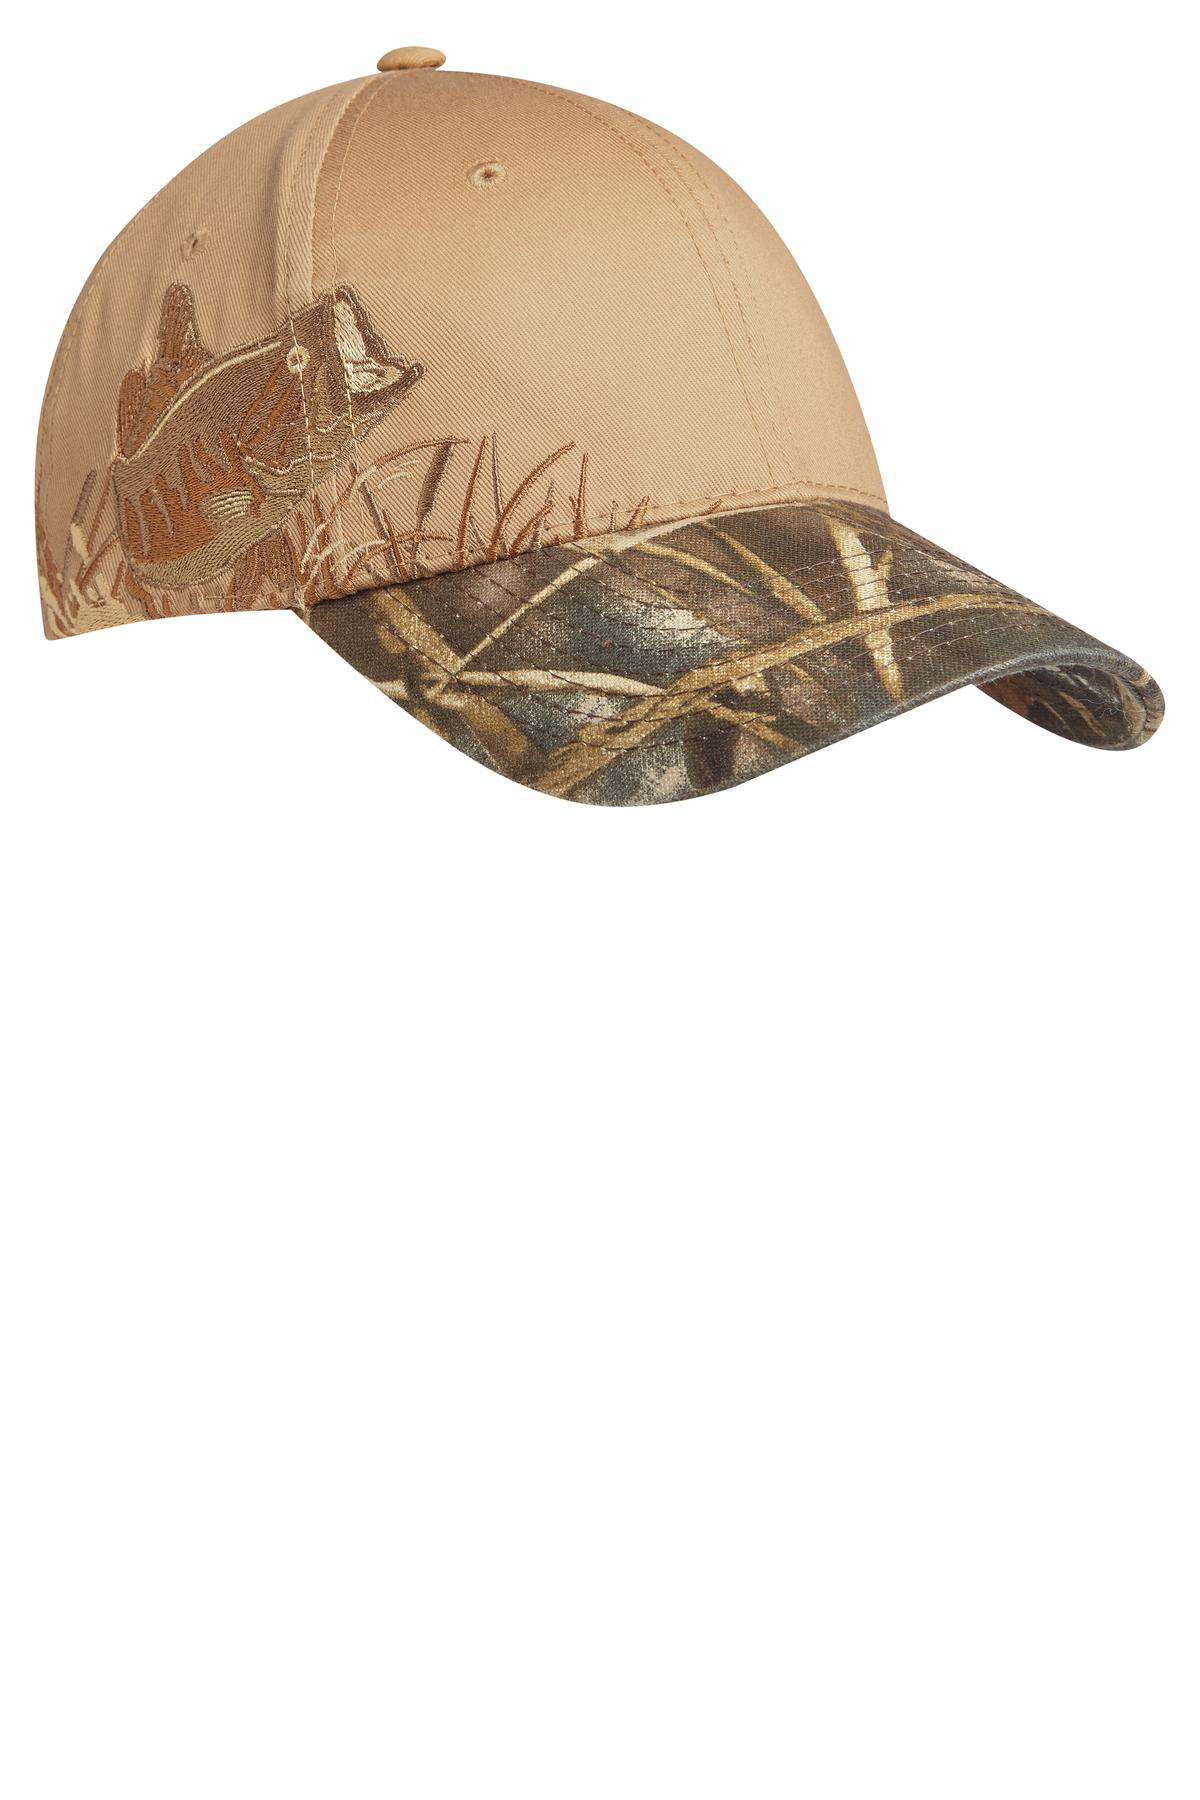 Port Authority ®  Embroidered Camouflage Cap. C820 - Realtree  MAX-5/ Tan/ Bass